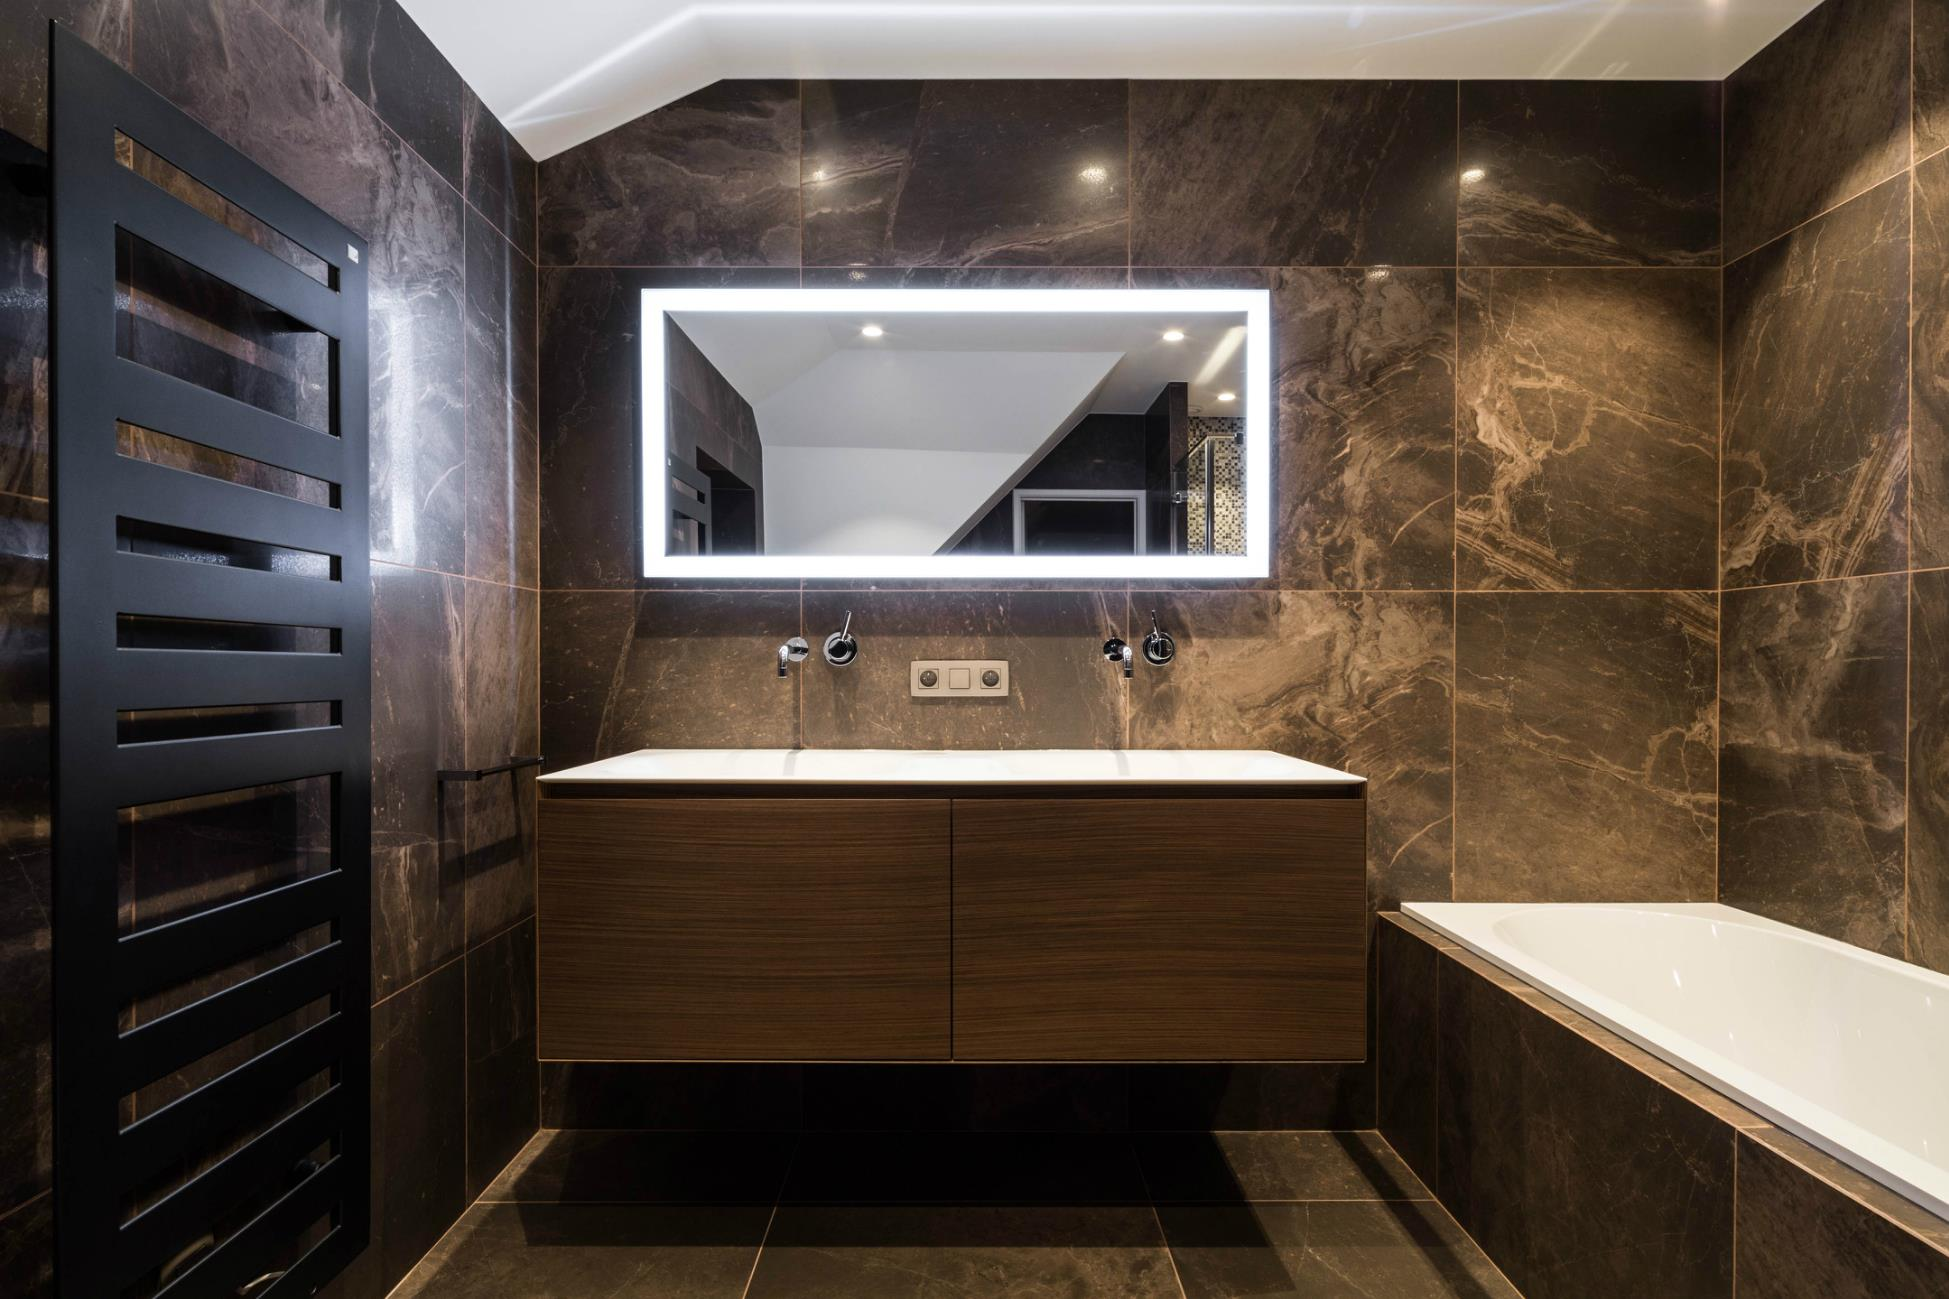 Renov management entreprise g n rale de r novation for Salle bain design